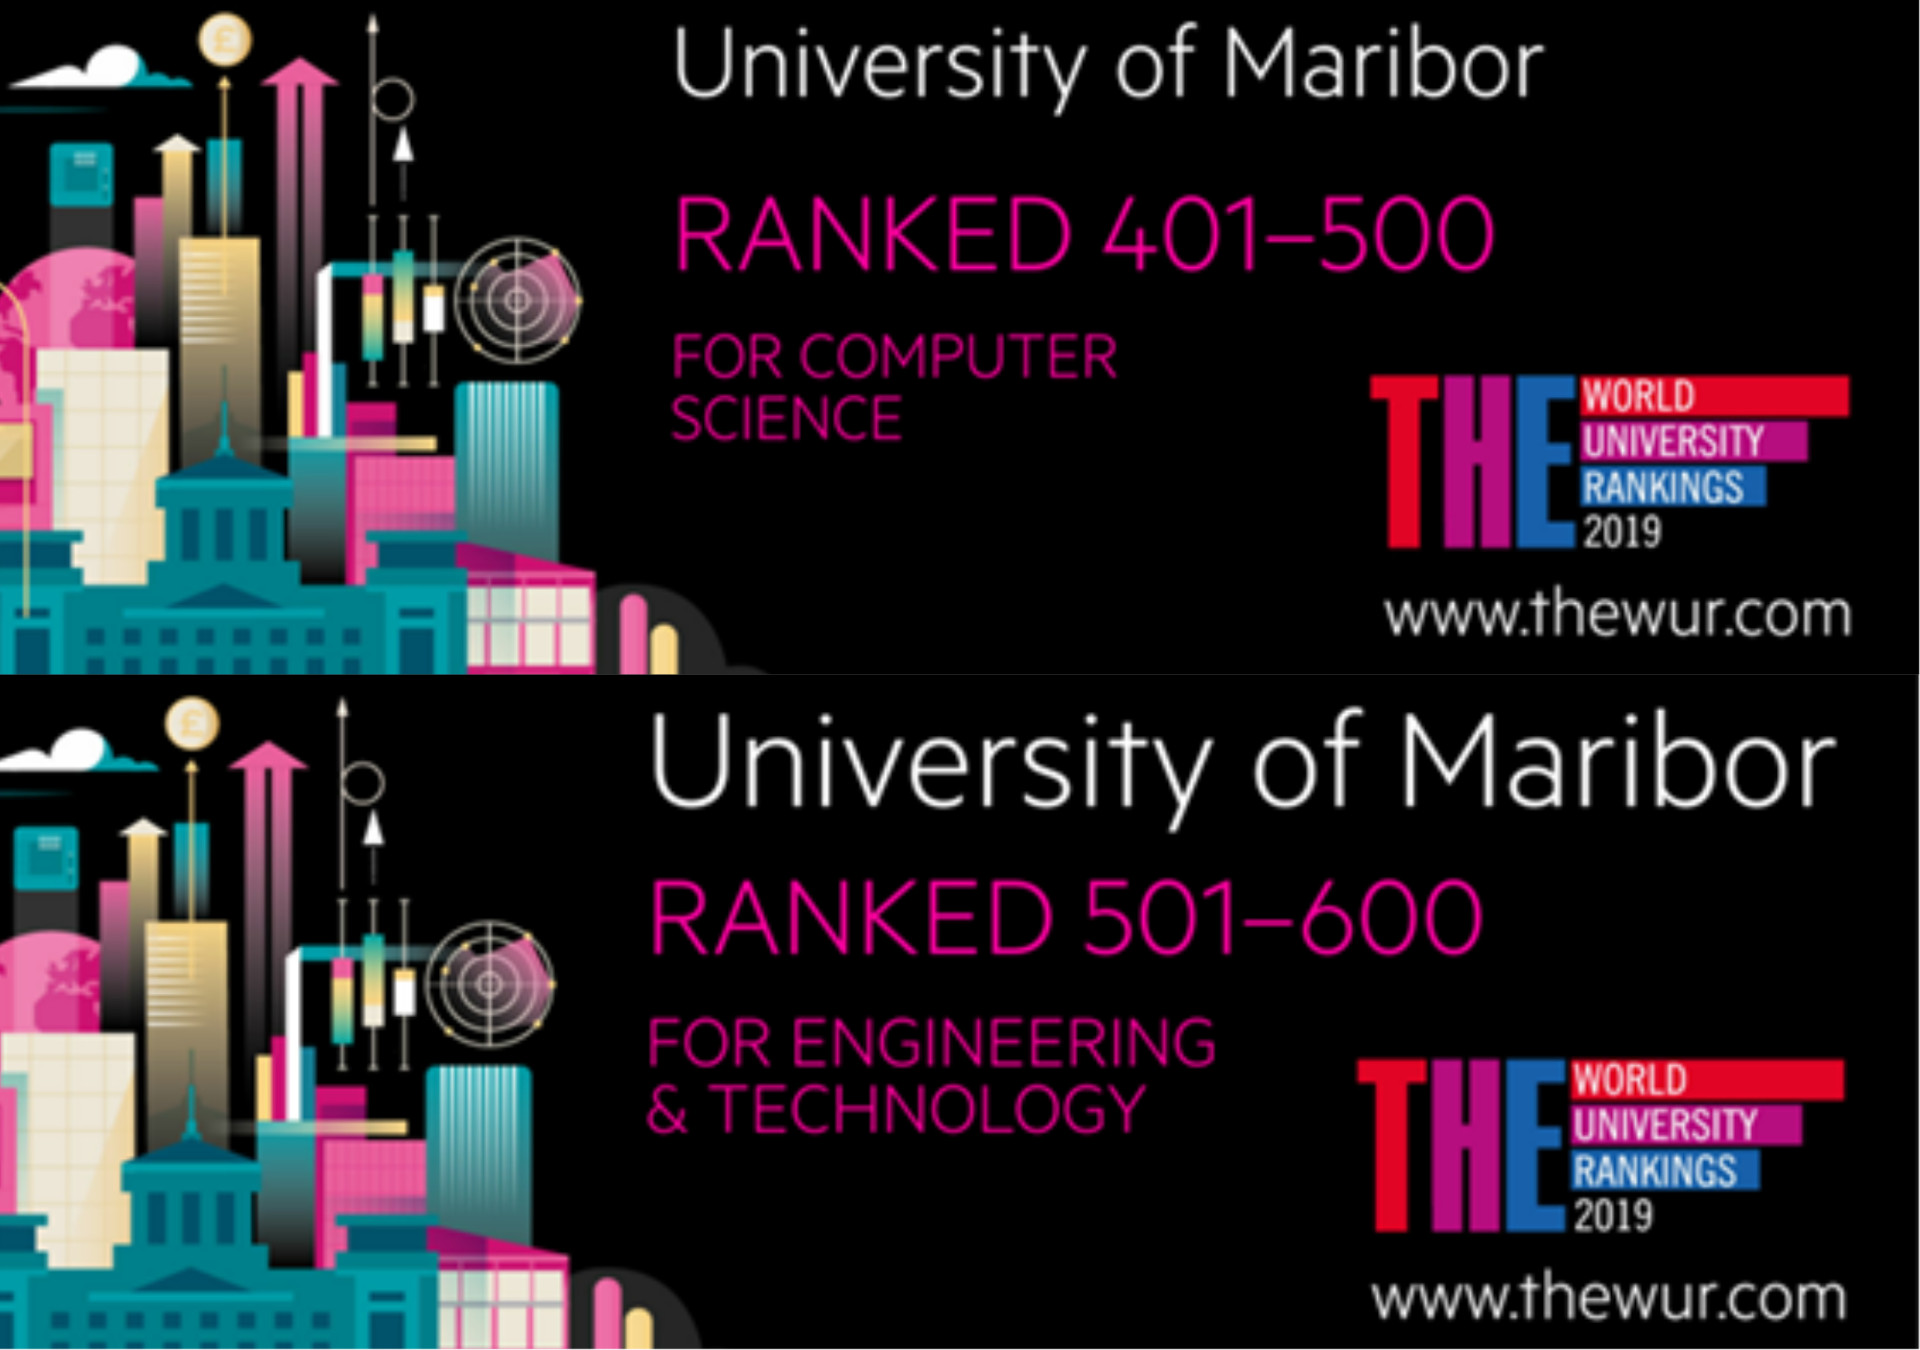 University of Maribor on Times World University Rankings